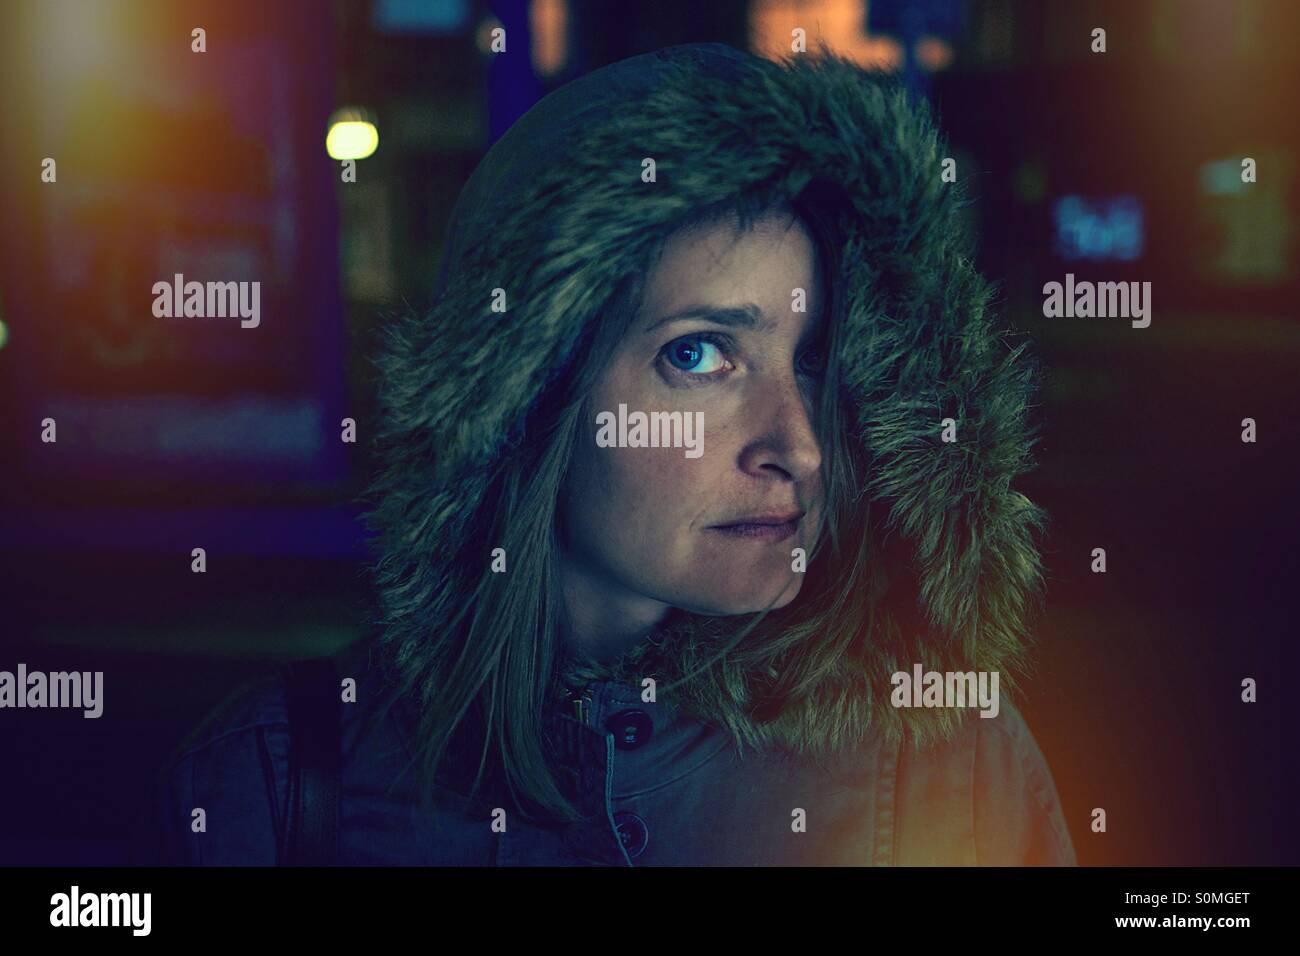 The Stare. - Stock Image